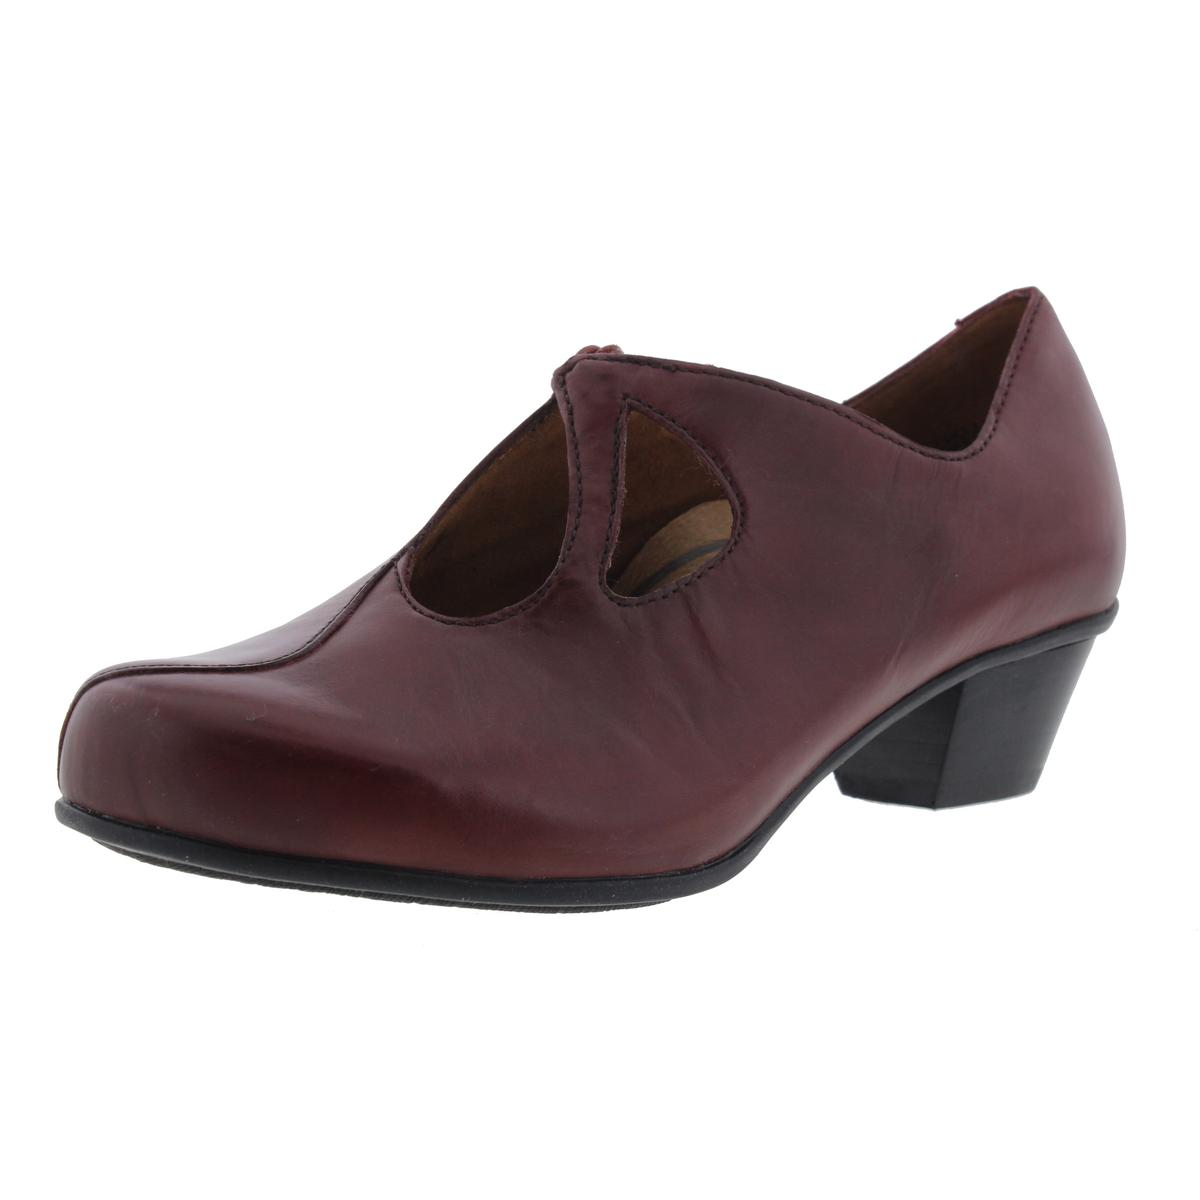 Aetrex Womens Leanne Cut-Out Leather Clogs by Aetrex